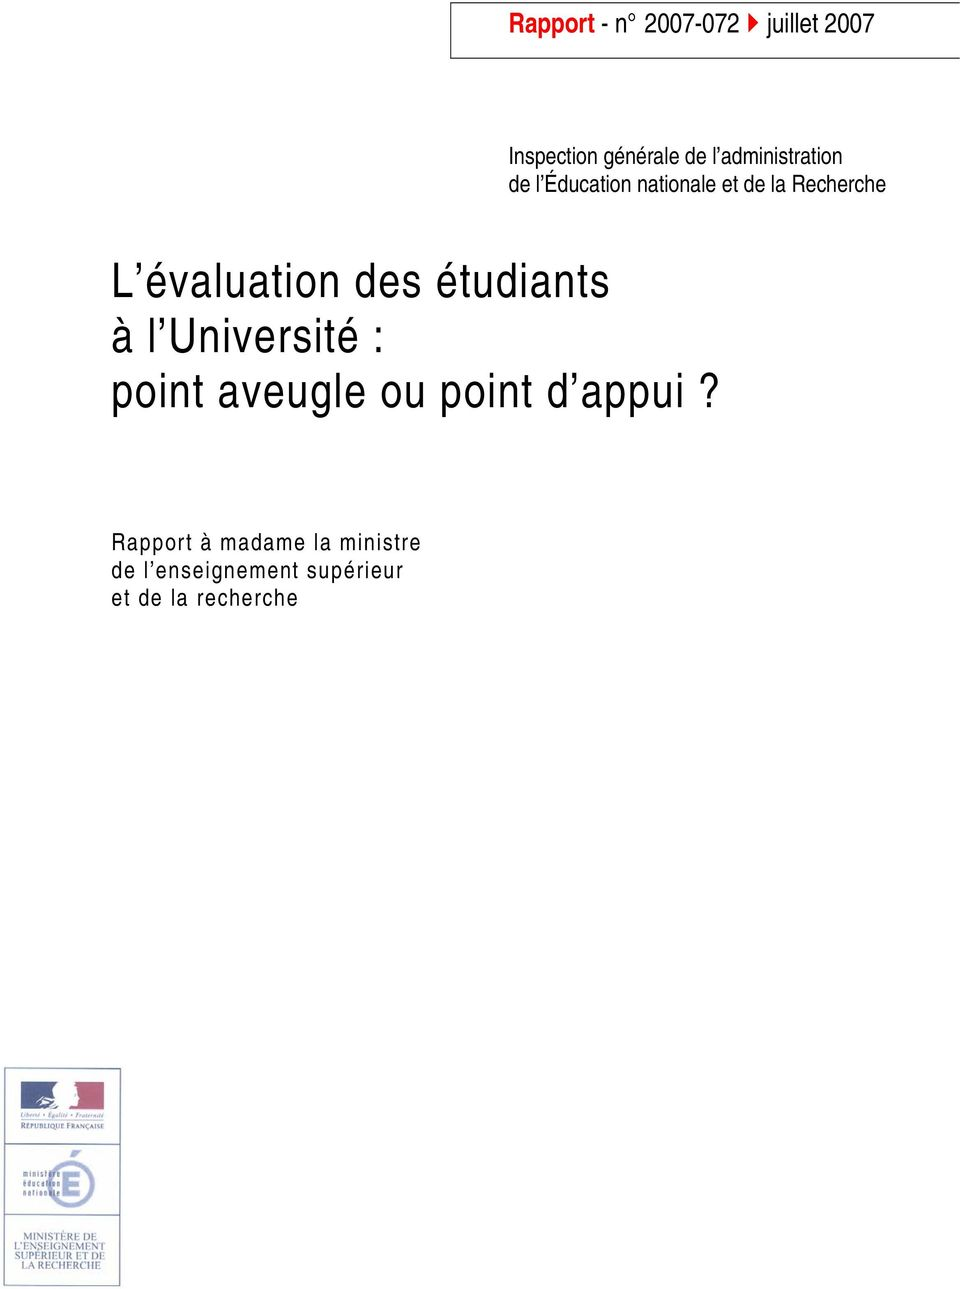 évaluation des étudiants à l Université : point aveugle ou point d